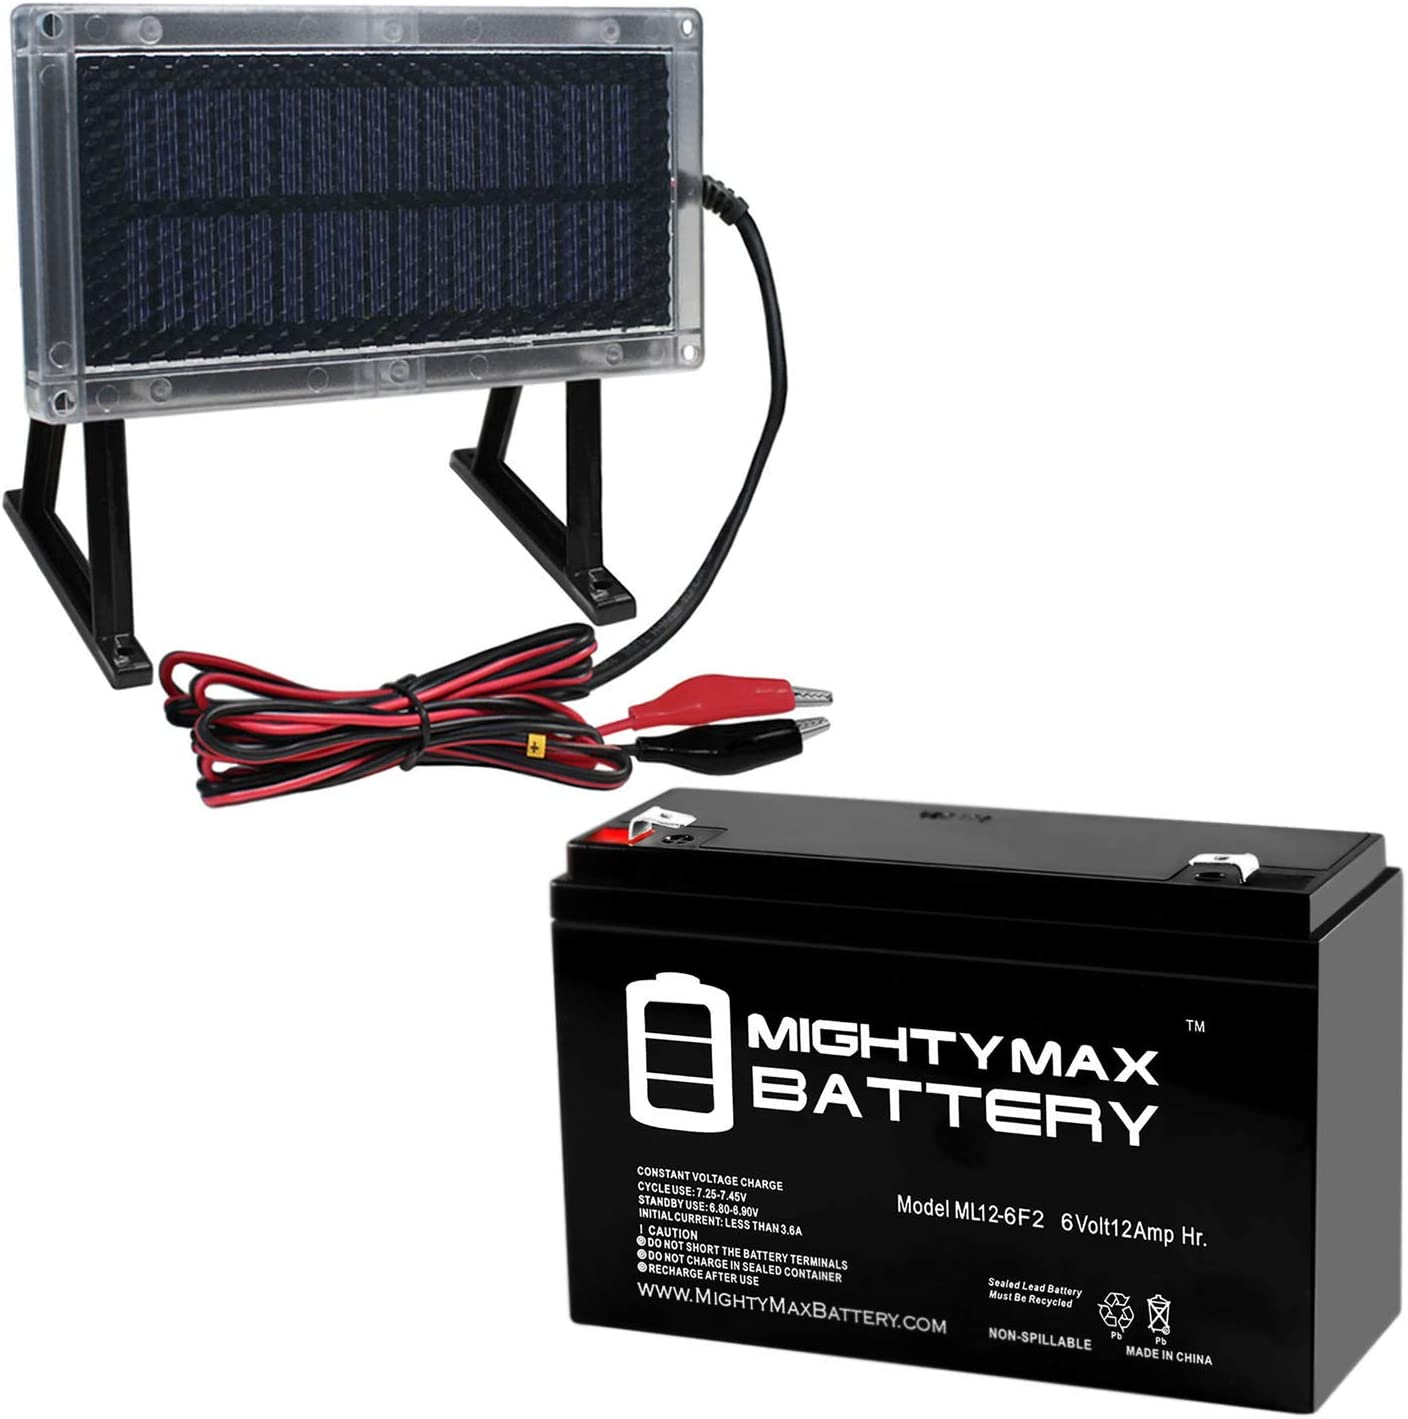 Mighty Max 12 VOLT 12 AH SLA BATTERY F2 WITH 12V SOLAR PANEL CHARGER